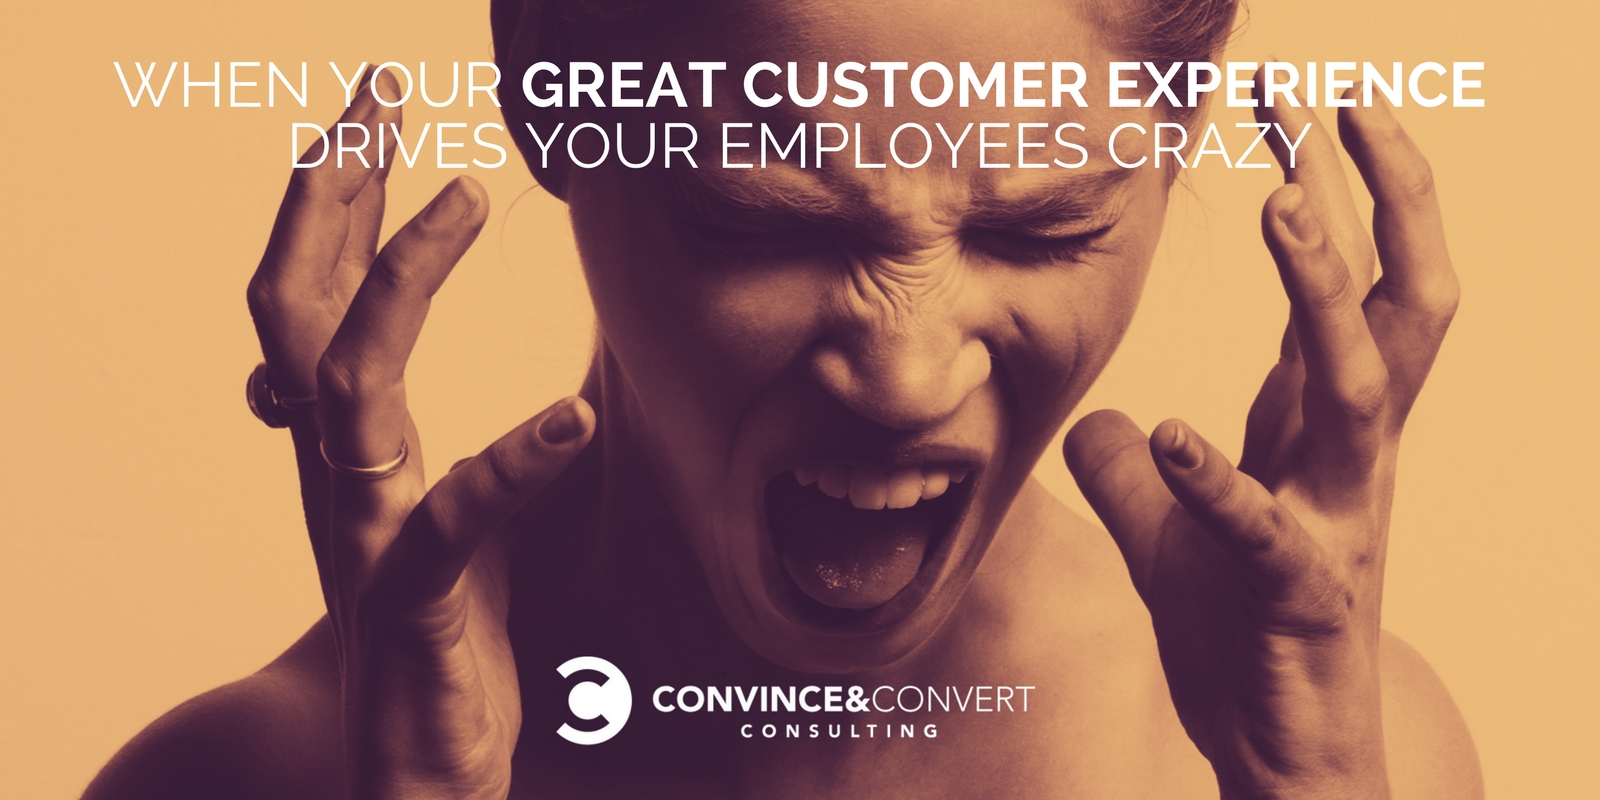 When Your Great Customer Experience Drives Your Employees Crazy